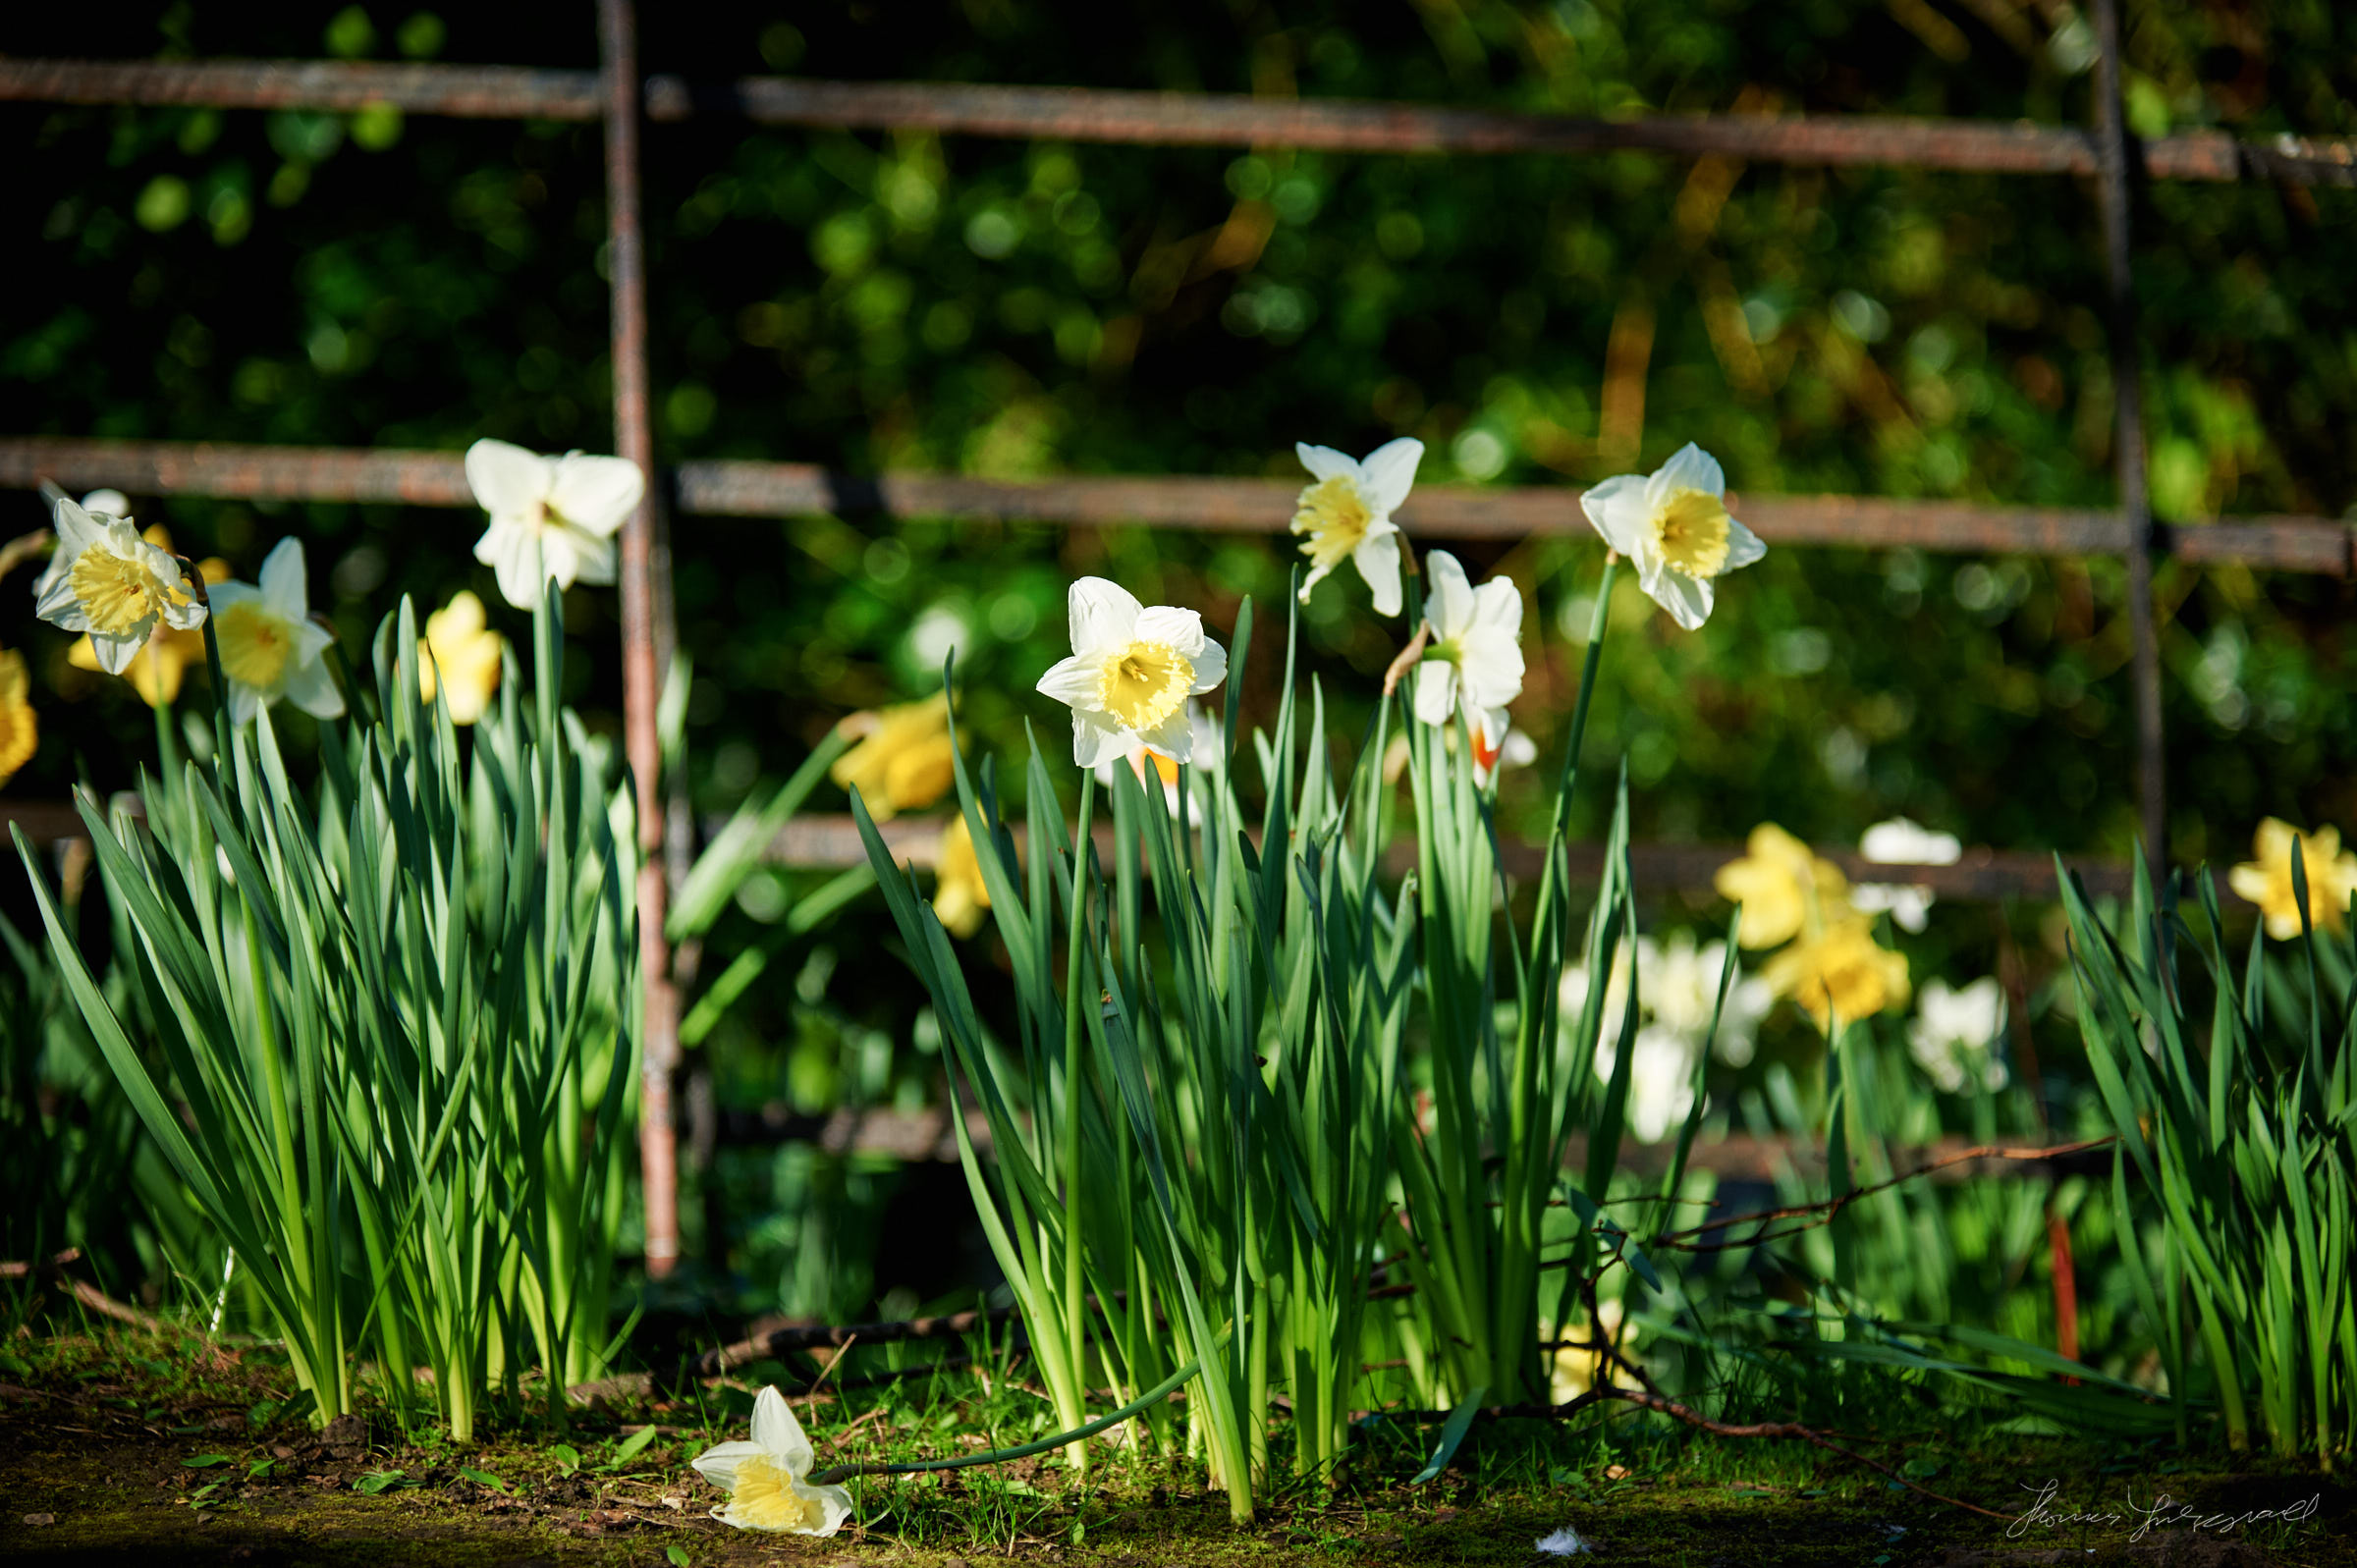 Daffodils in the Park